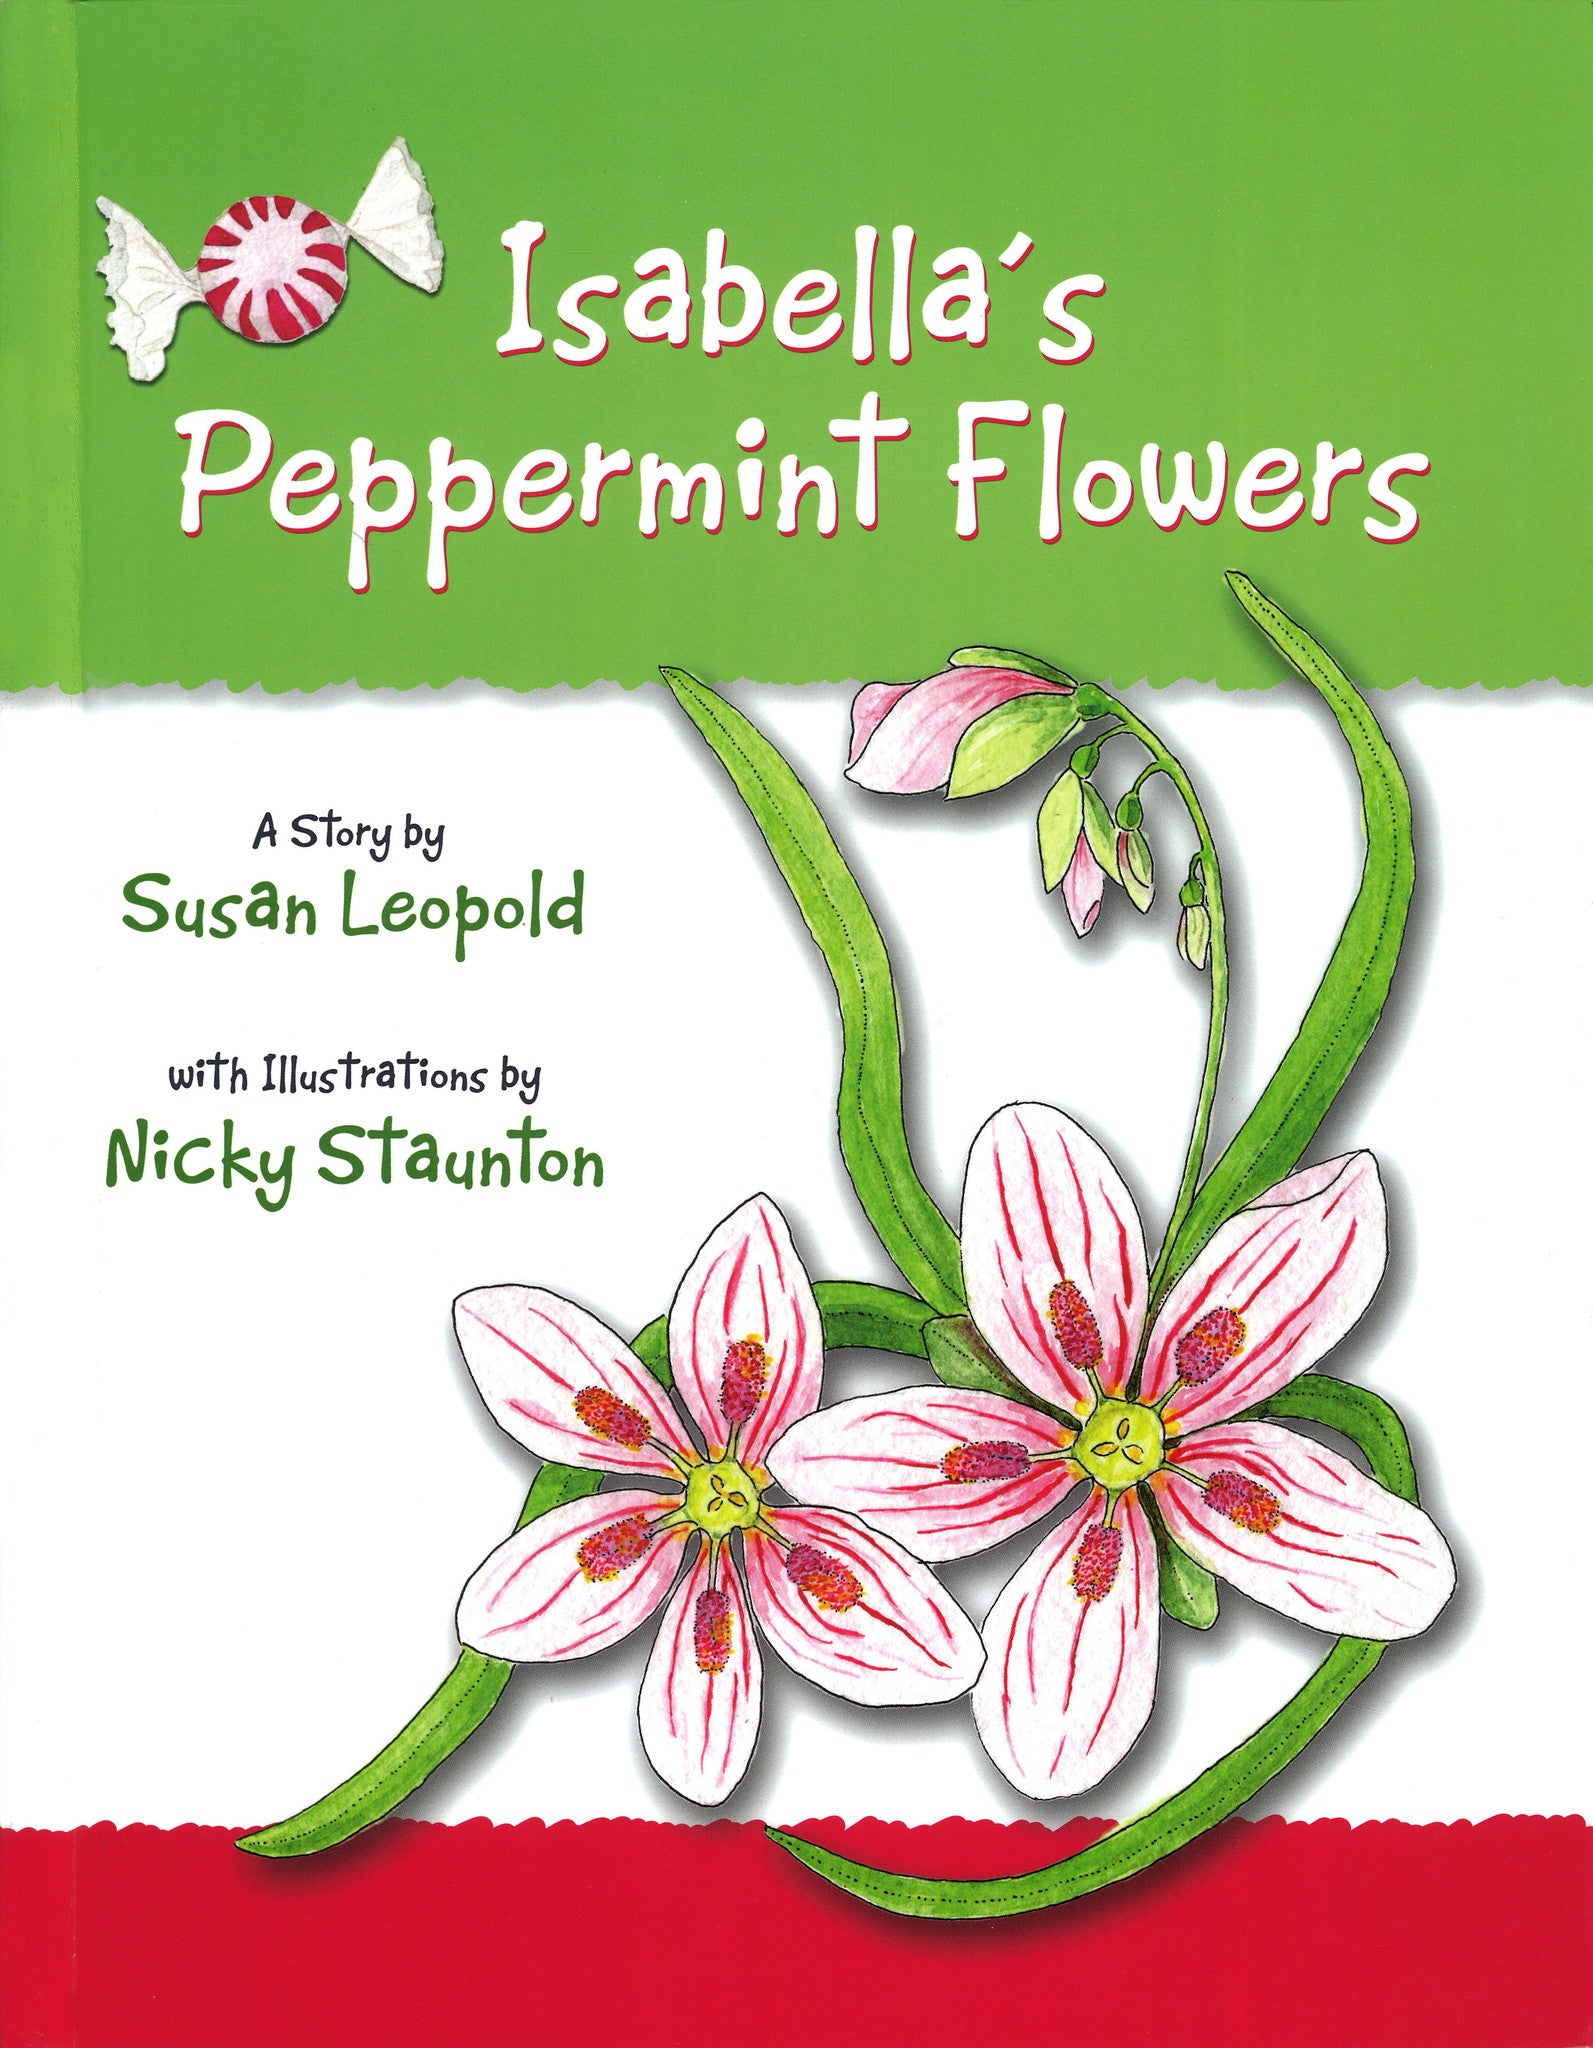 Isabella's Peppermint Flowers